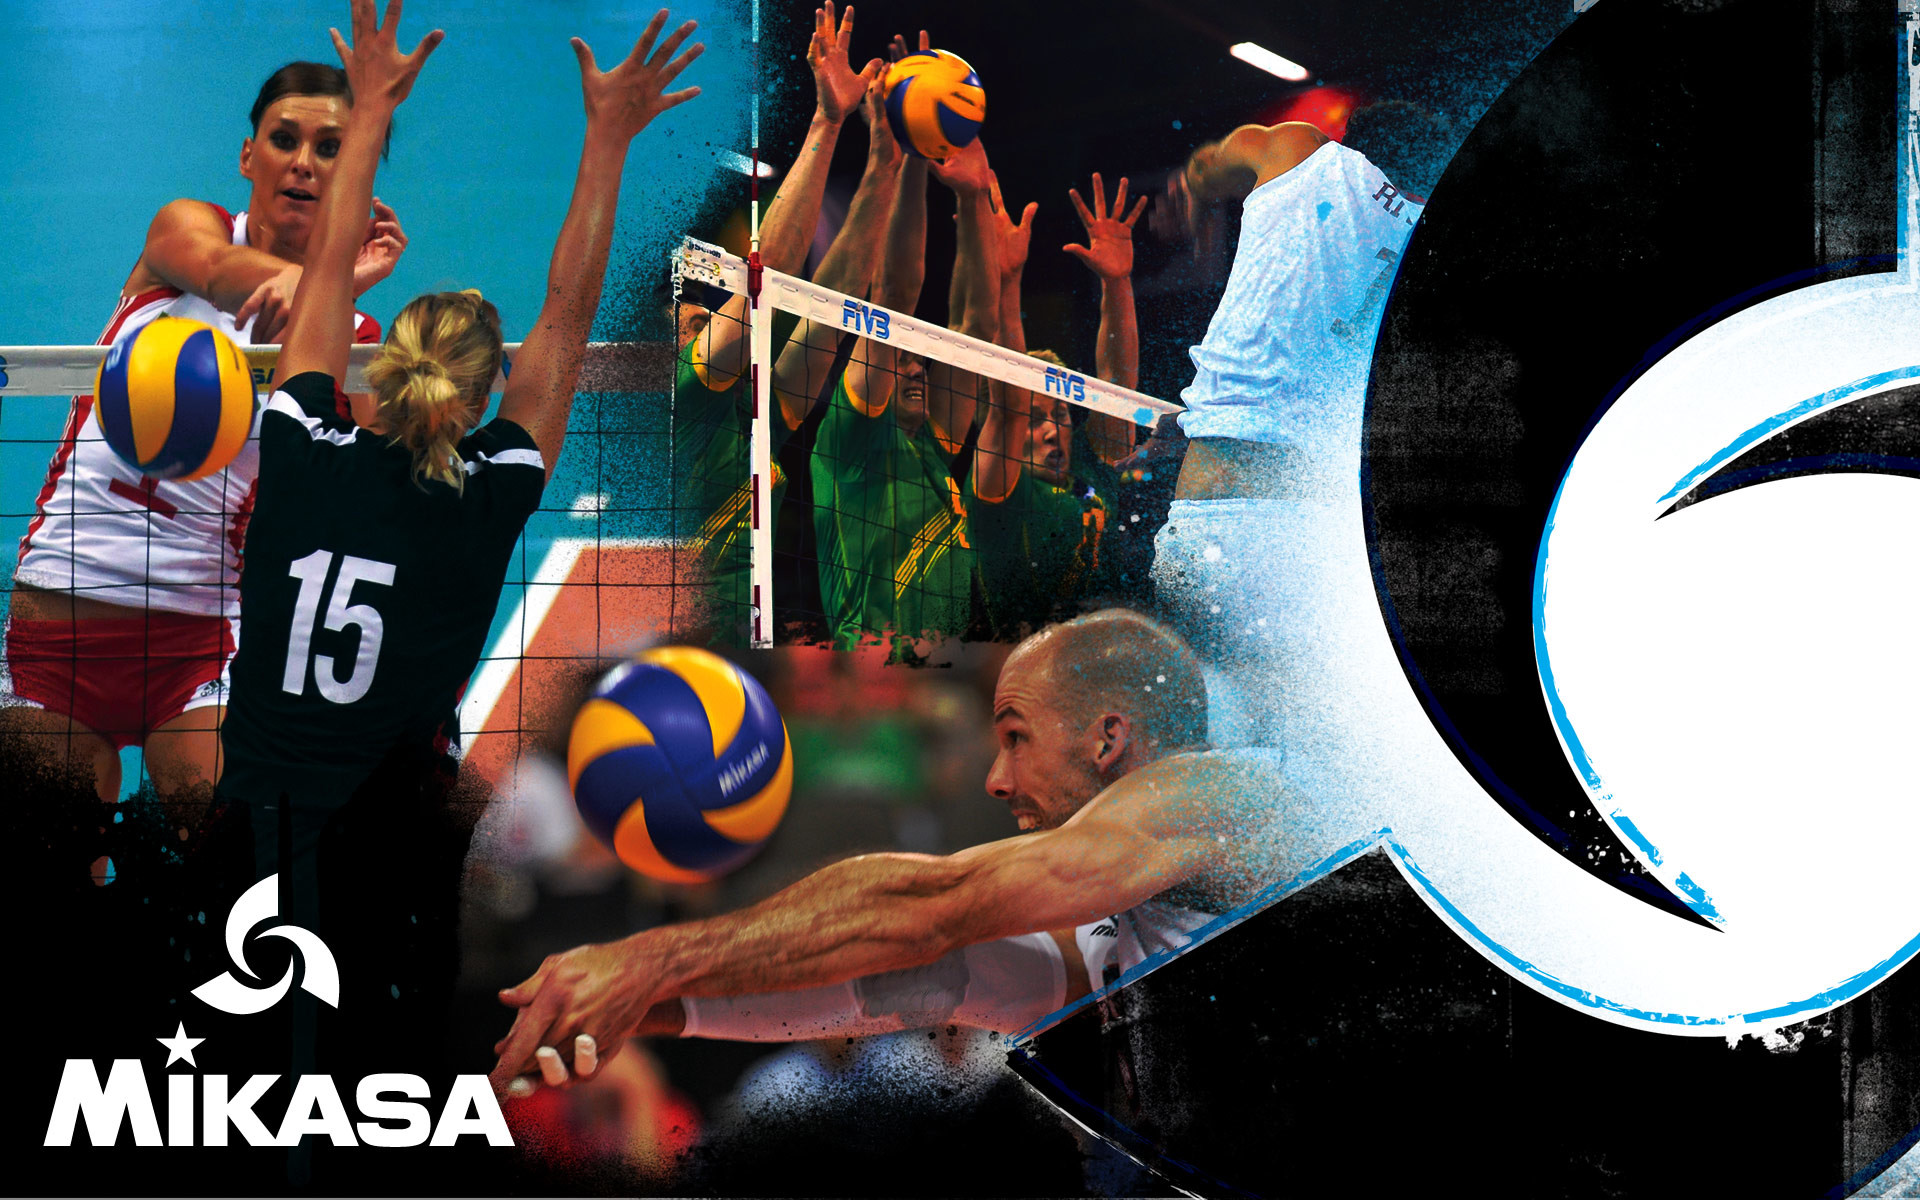 1920x1200 VolleyBall Wallpaper Find best latest VolleyBall Wallpaper for